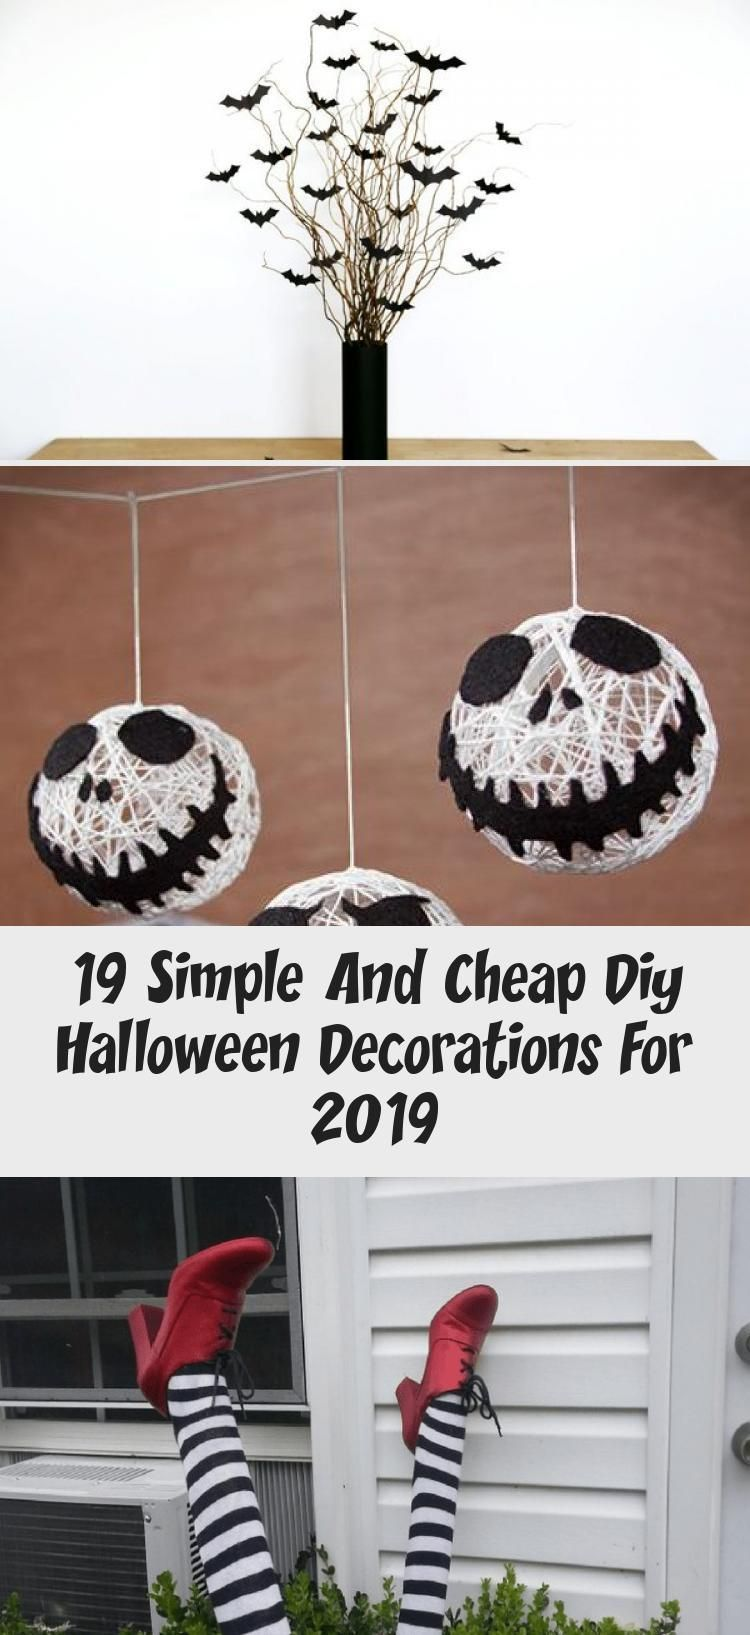 19 Simple And Cheap Diy Halloween Decorations For 2019 #cheapdiyhalloweendecorations cheap diy halloween decorations #Cutehalloweendecorations #halloweendecorationsGarage #halloweendecorationsOutdoor #Fiestahalloweendecorations #Scaryhalloweendecorations #cheapdiyhalloweendecorations